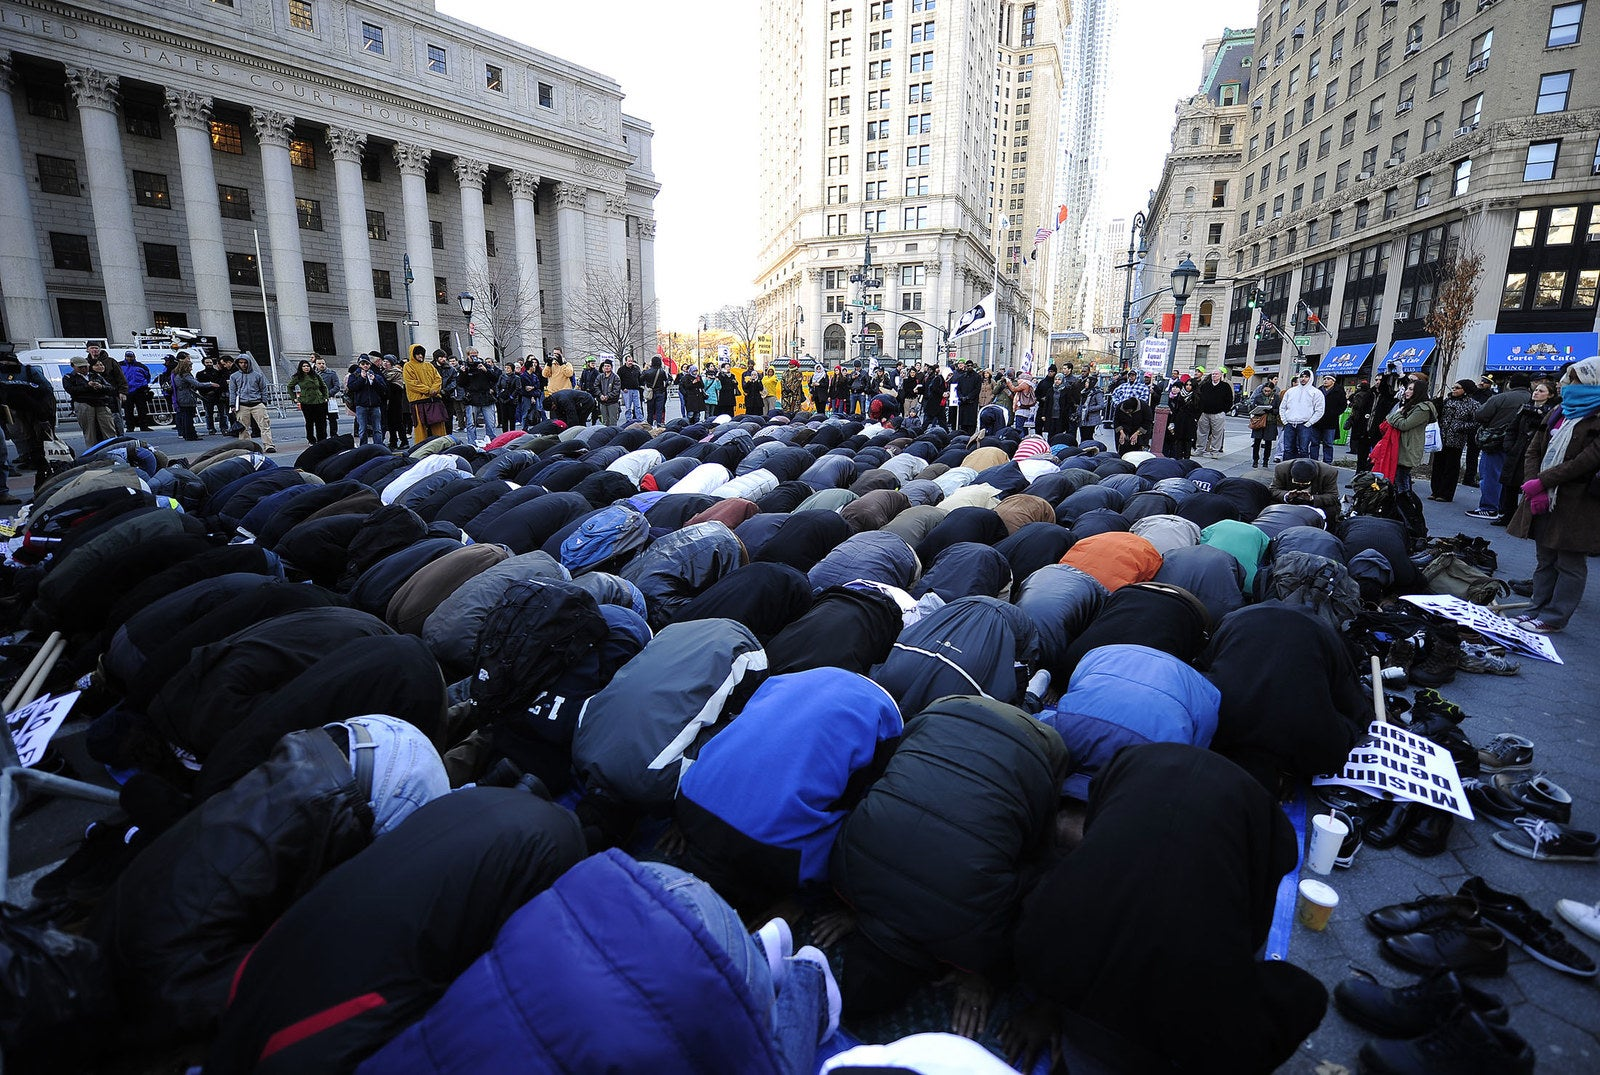 Muslims perform Friday prayers at Foley Square in New York City in support of Occupy Wall Street on Nov. 18, 2011.